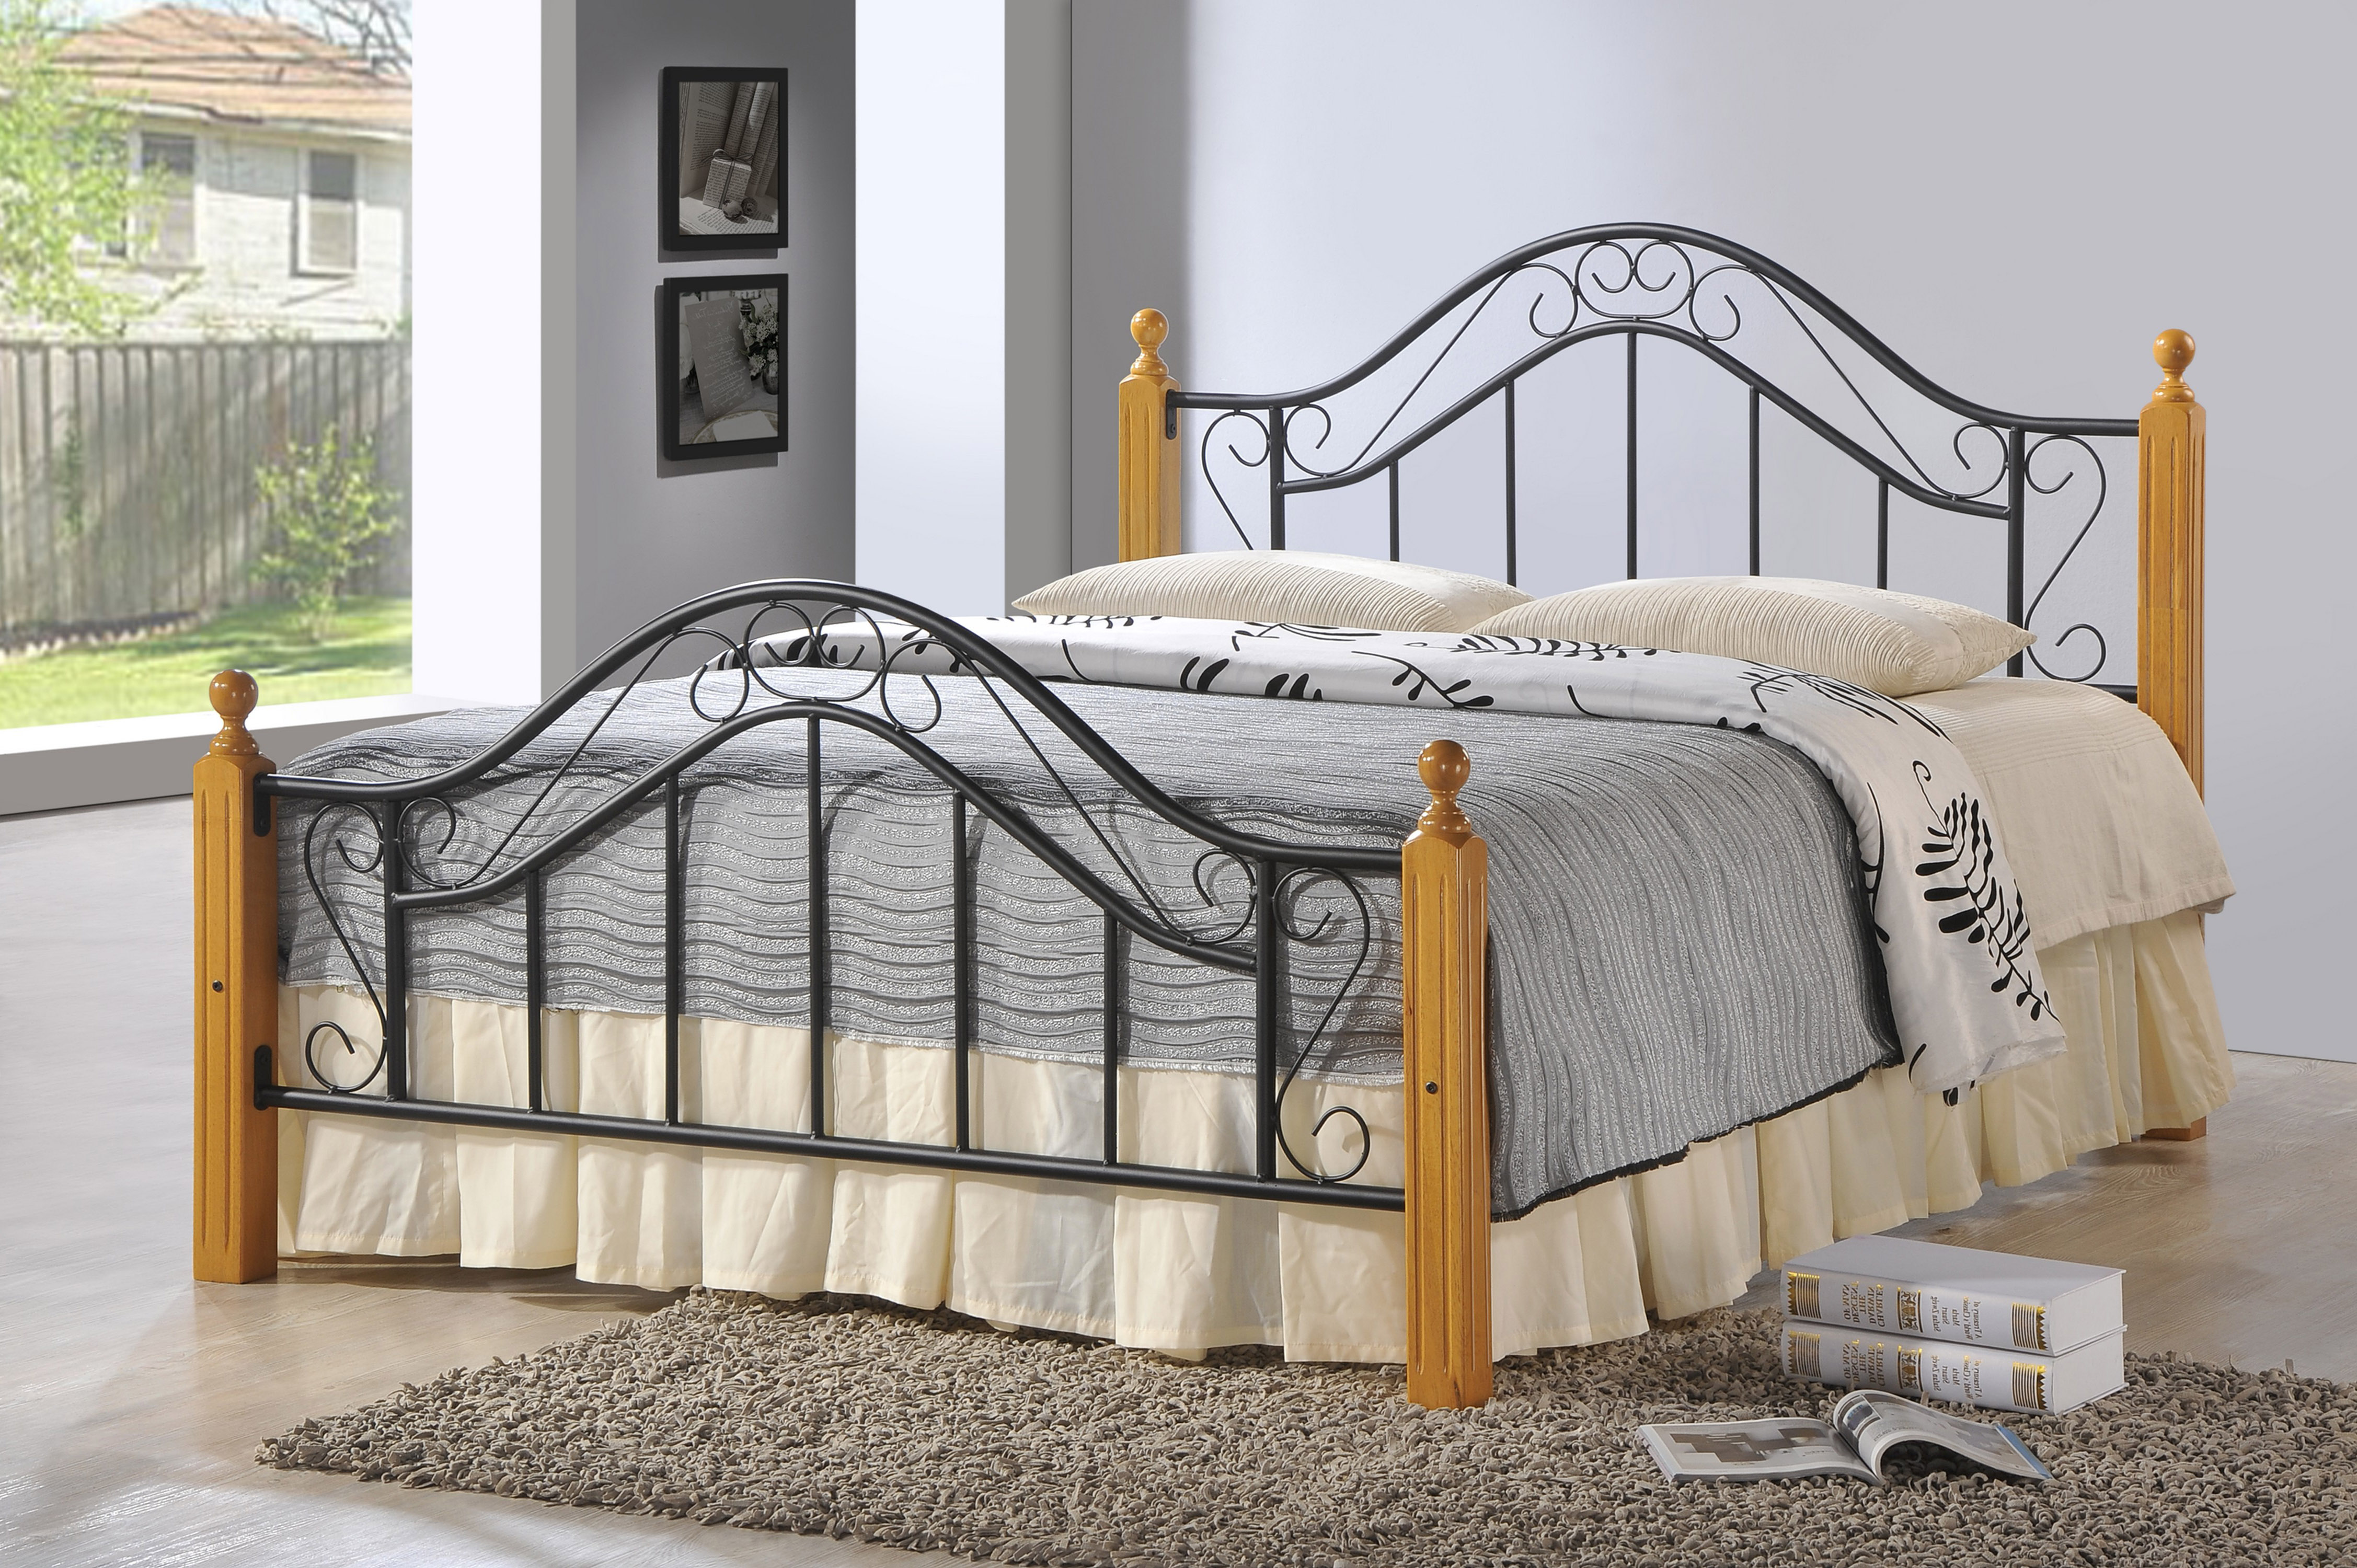 Baltimore Bedframe Mattressshop Ie